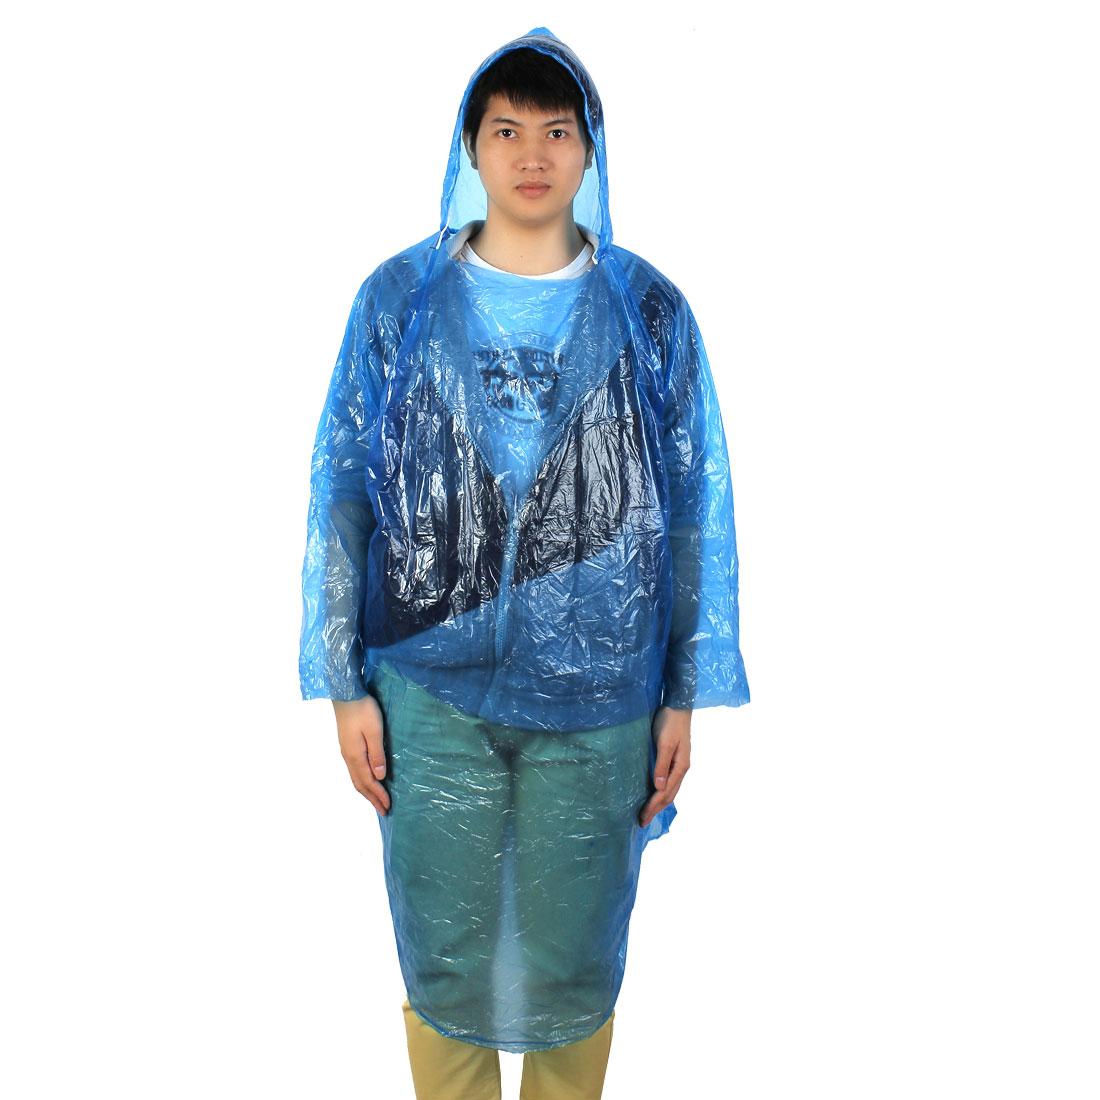 Unisex Outdoor Camping Hiking Cover Plastic Disposable Pullover Raincoat Blue